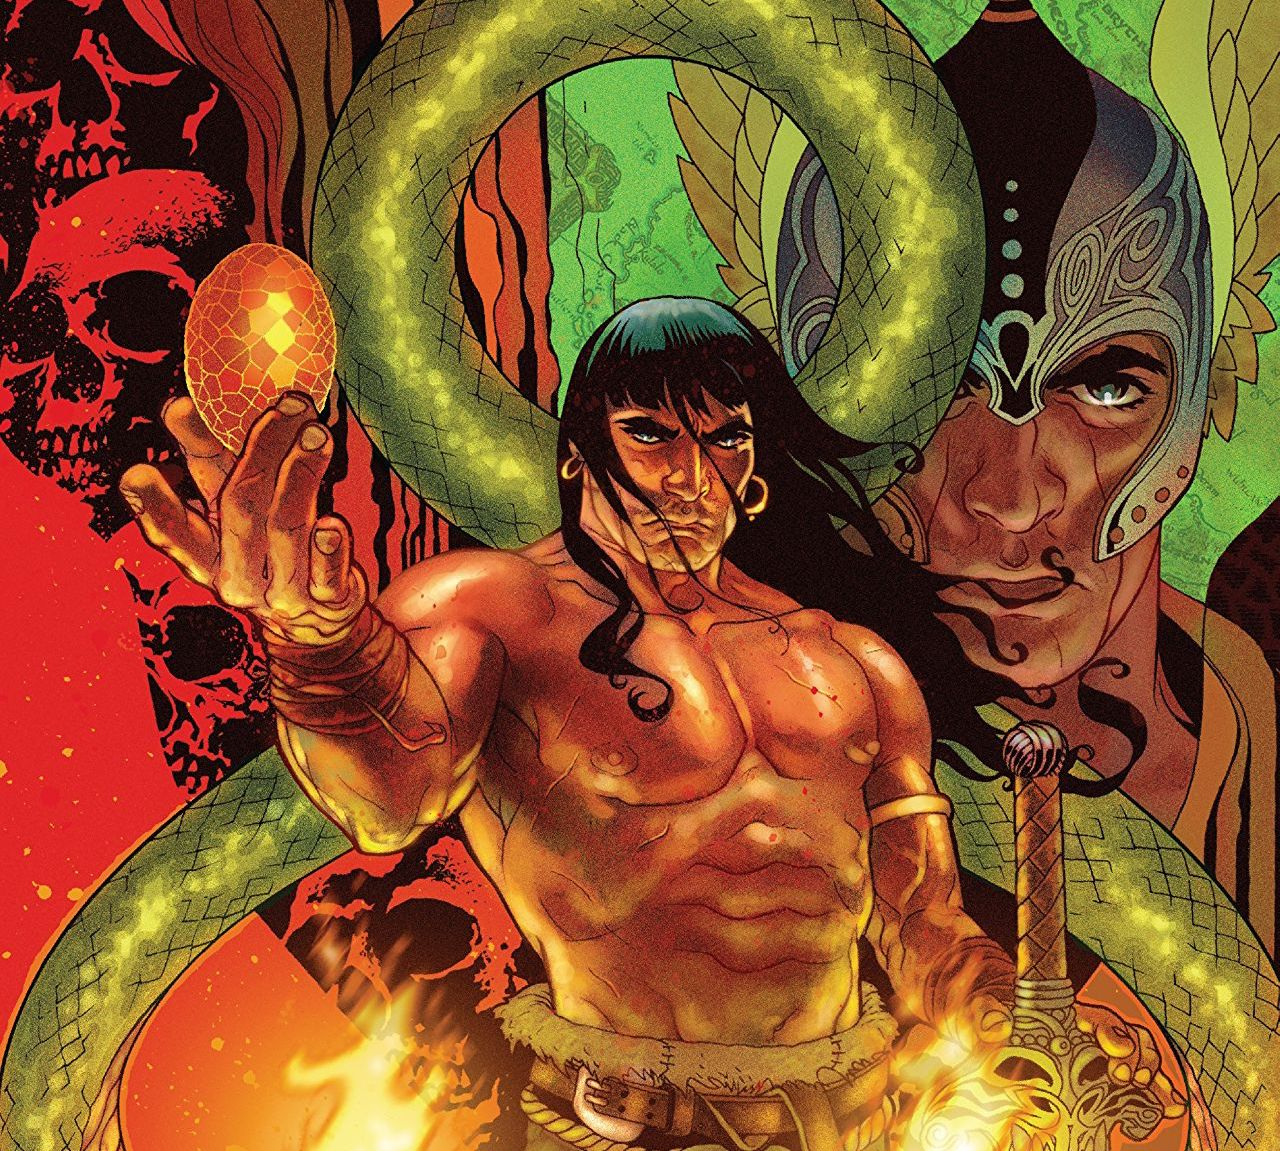 Get a taste of every type of Conan the Barbarian available!